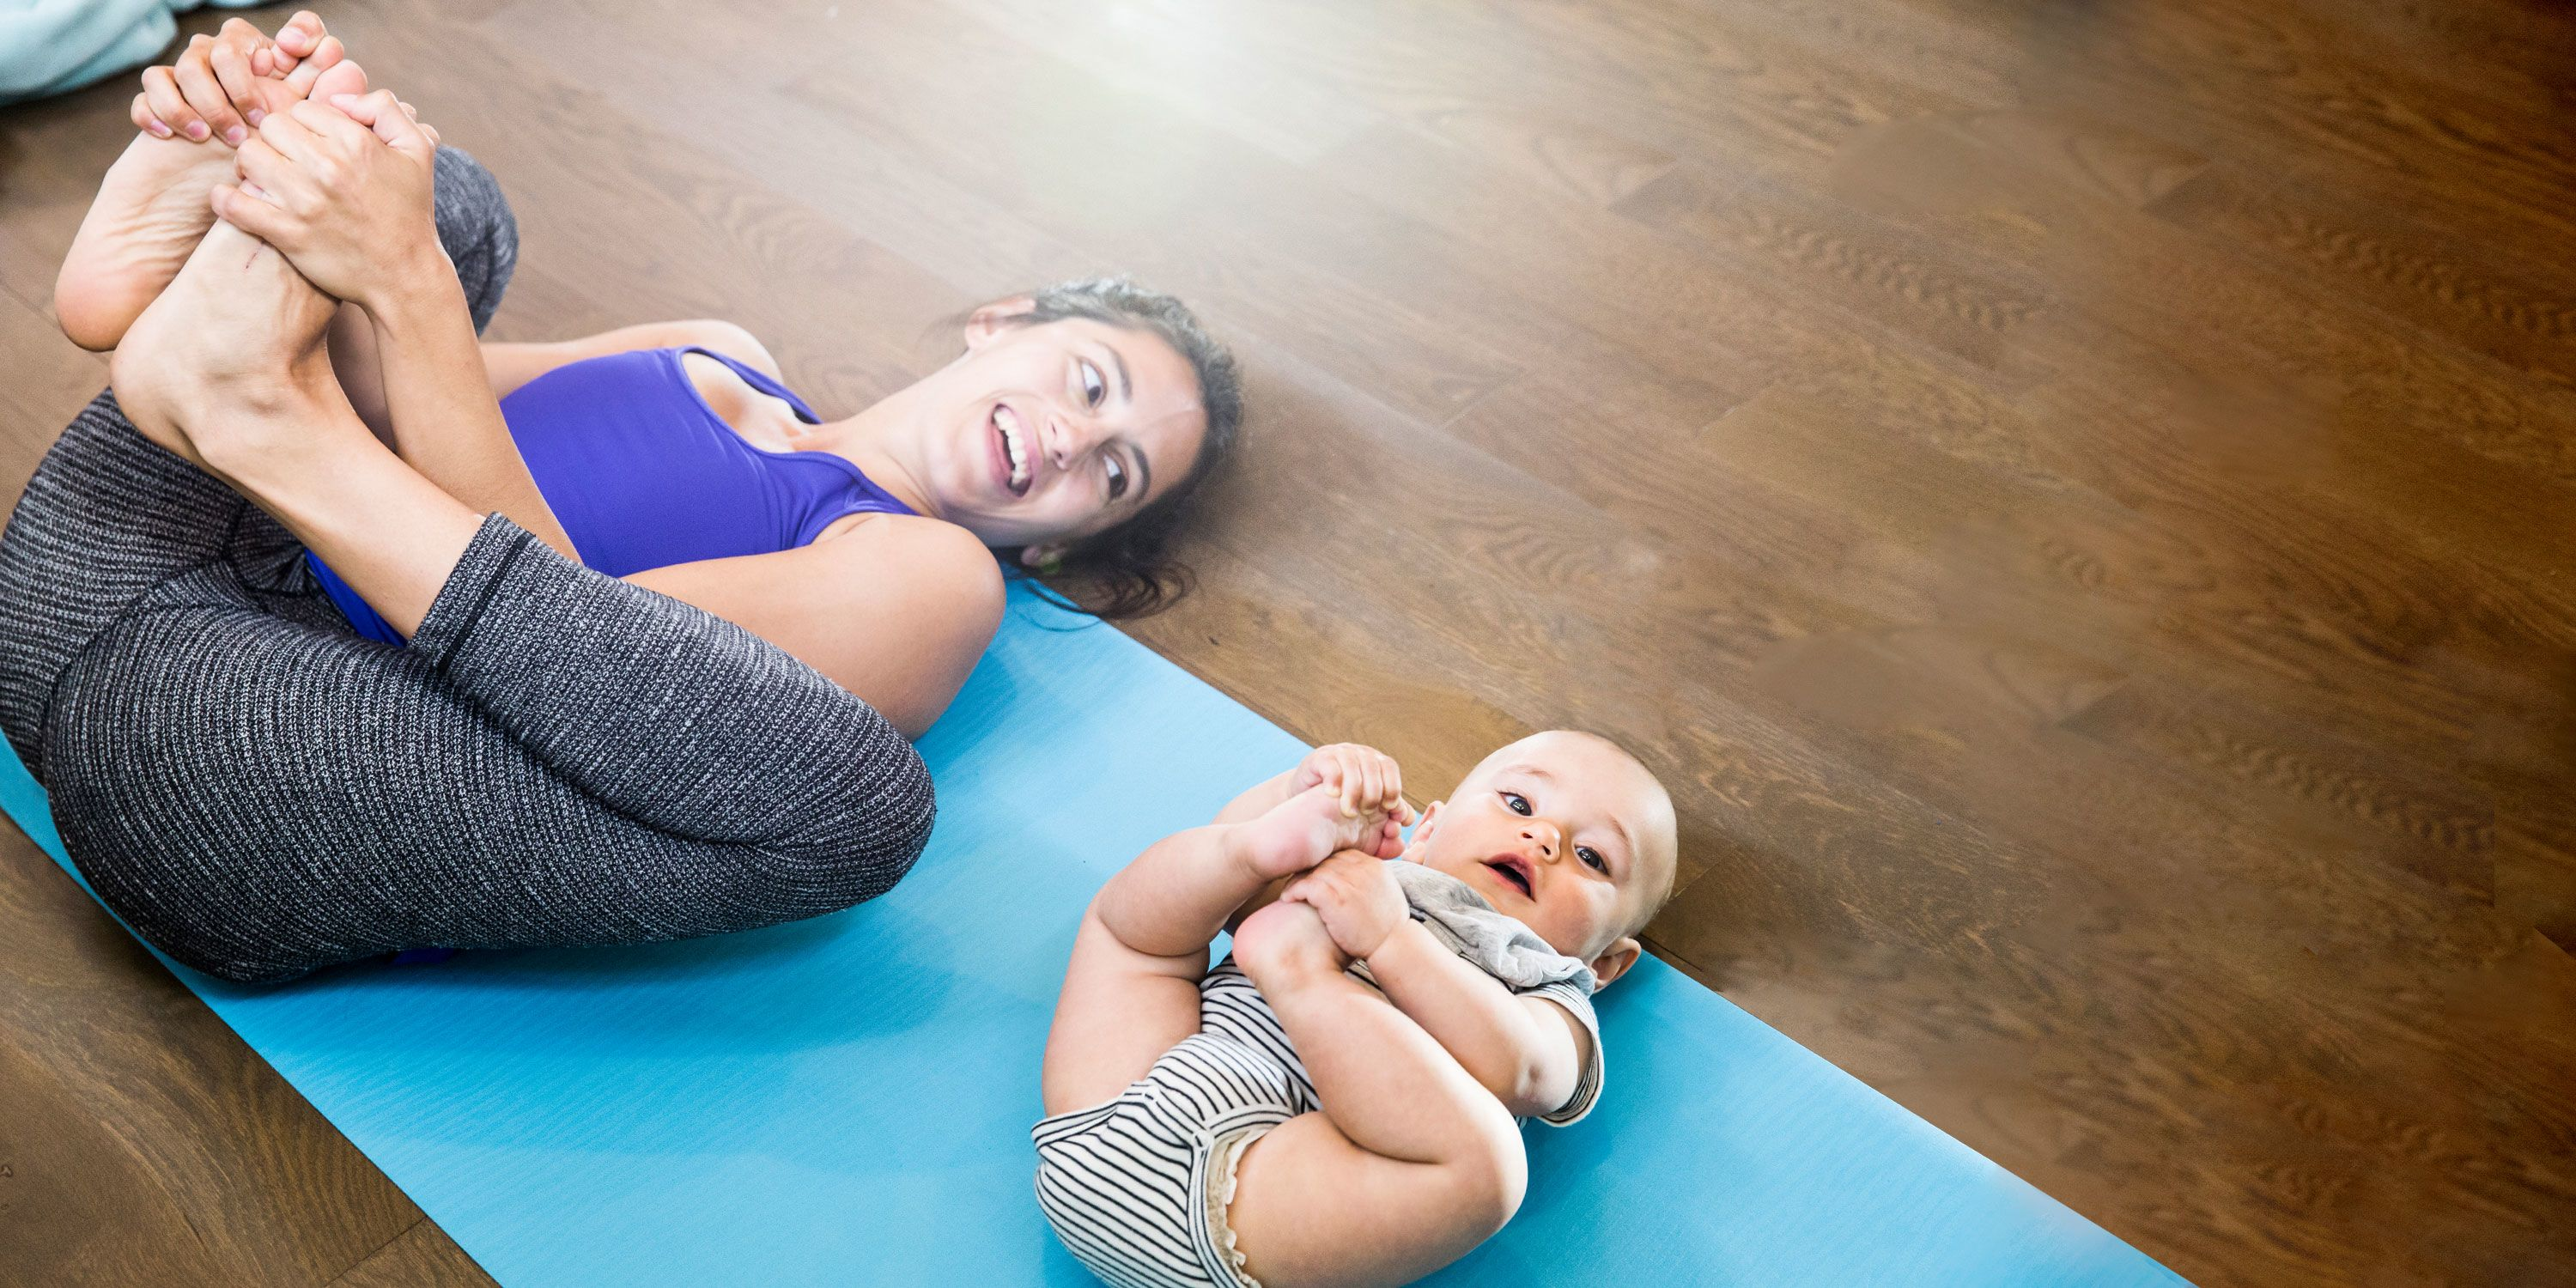 A woman in aerobic clothing lays down on a yoga mat grabbing her toes together. She smiles at a baby laying next to her performing the same pose.